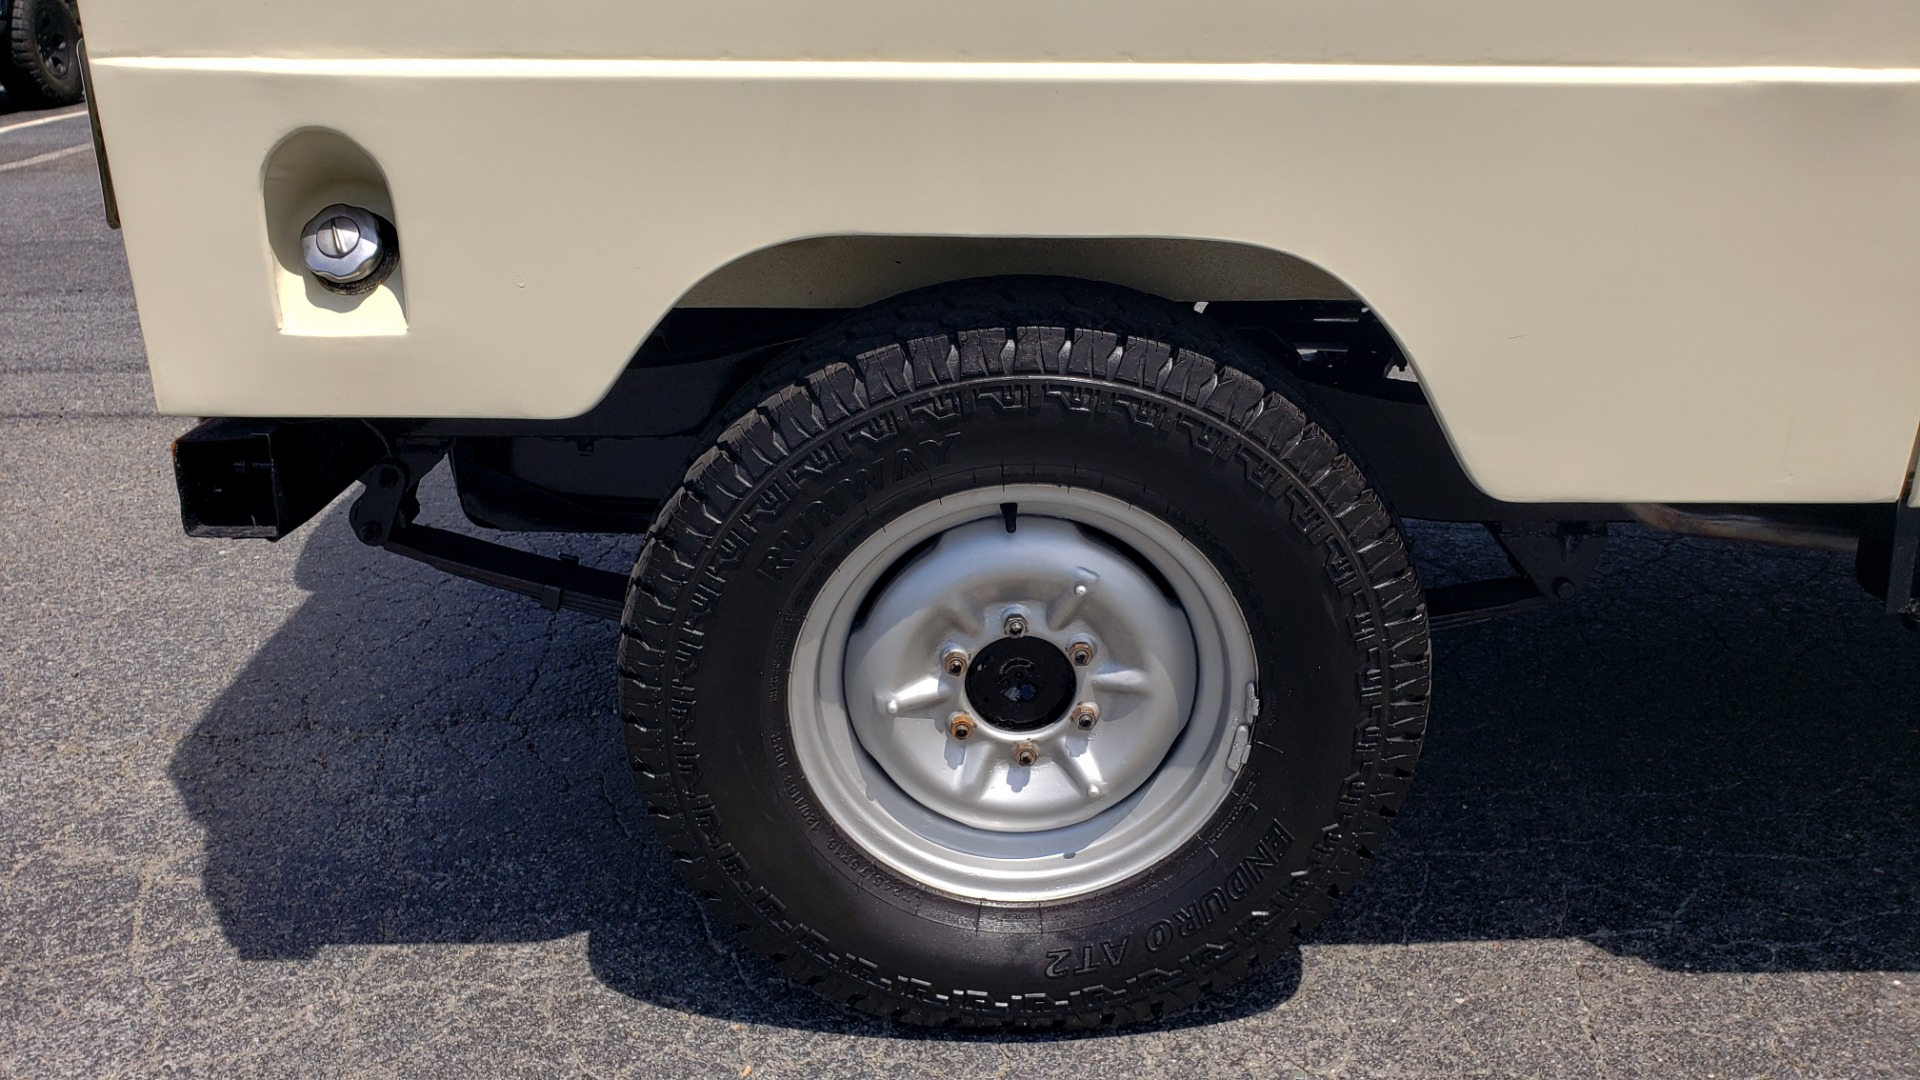 Used 1978 Nissan PATROL 4x4 / SOFT-TOP / 6-CYL / MANUAL / SEATS-9 / FULLY RESTORED for sale $32,400 at Formula Imports in Charlotte NC 28227 65